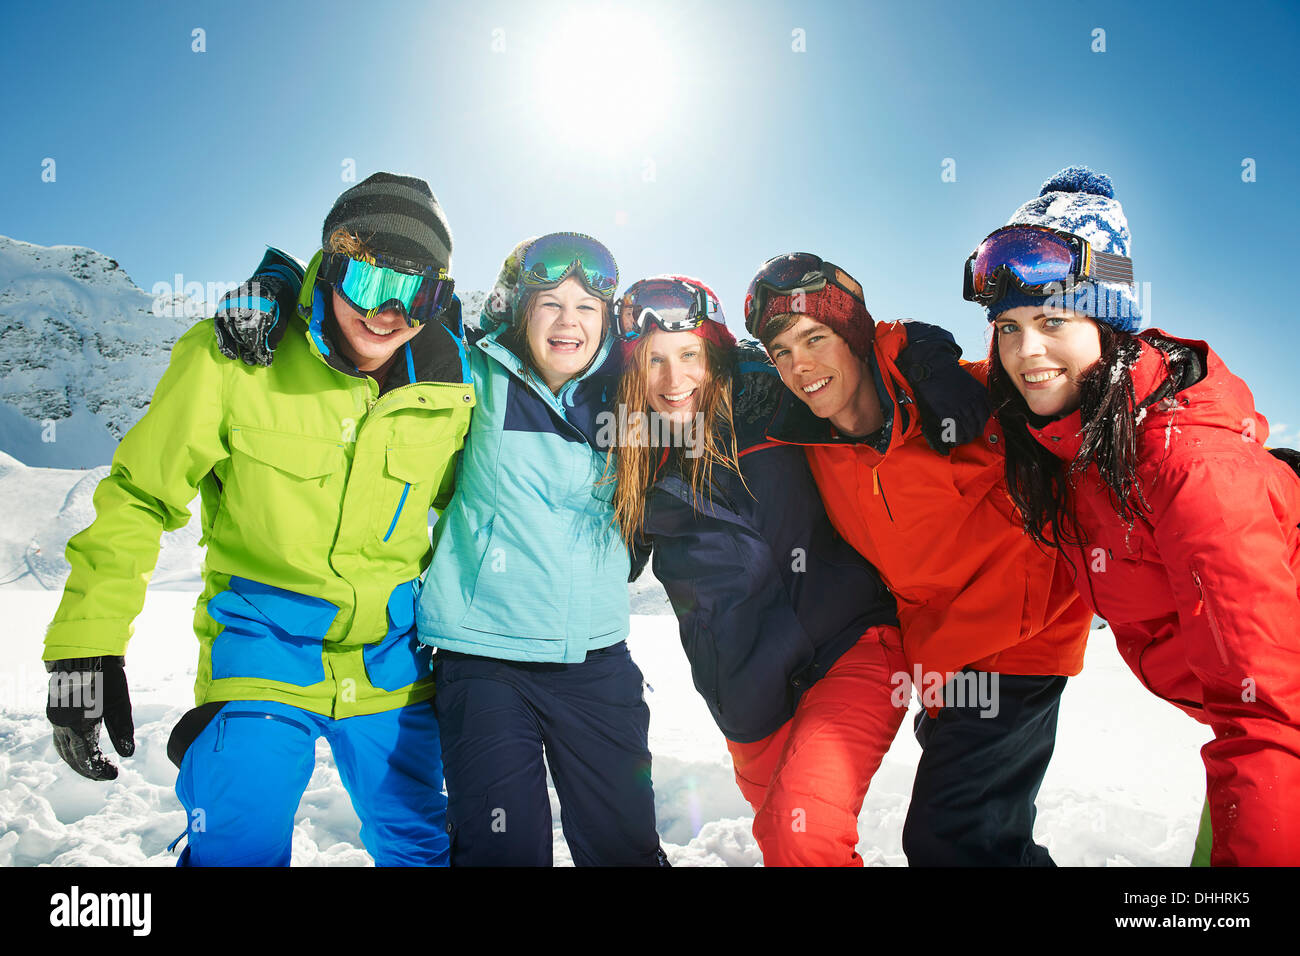 Friends wearing skiwear with arms around each other, Kuhtai, Austria - Stock Image